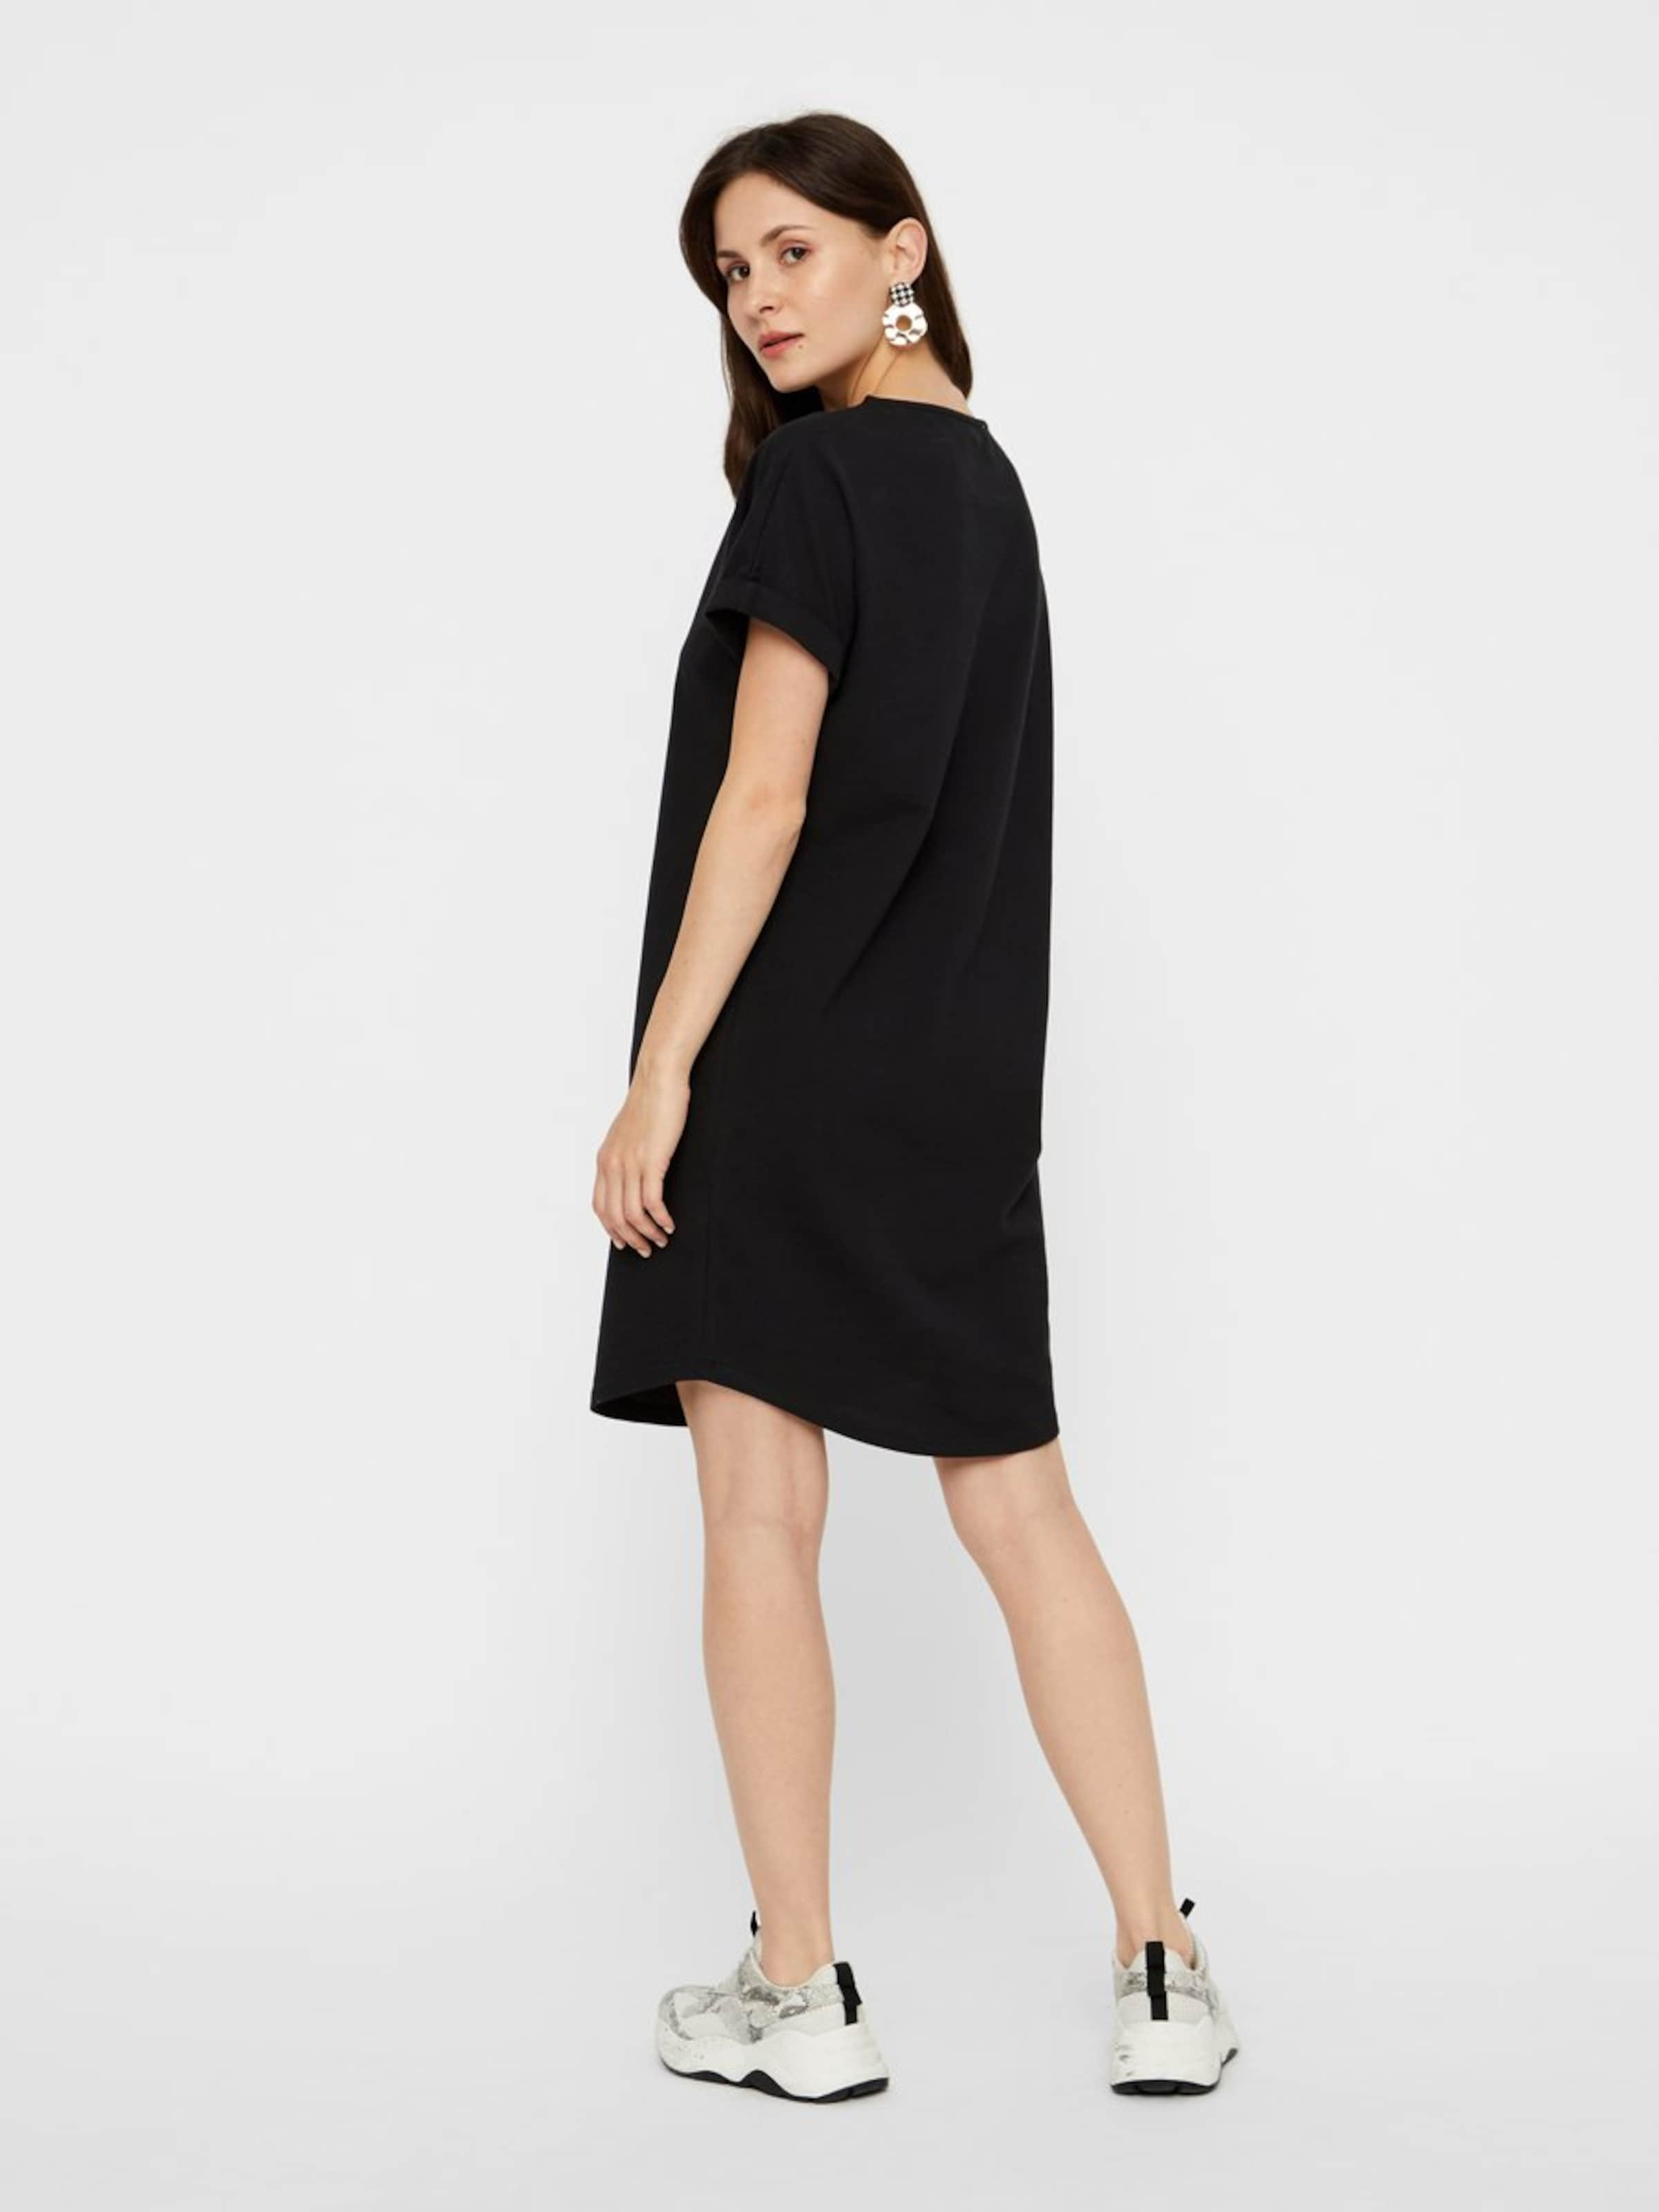 En Robe Noir Pieces Robe Pieces Noir Robe Pieces En Noir Robe En En Pieces 7vIfb6Ygy